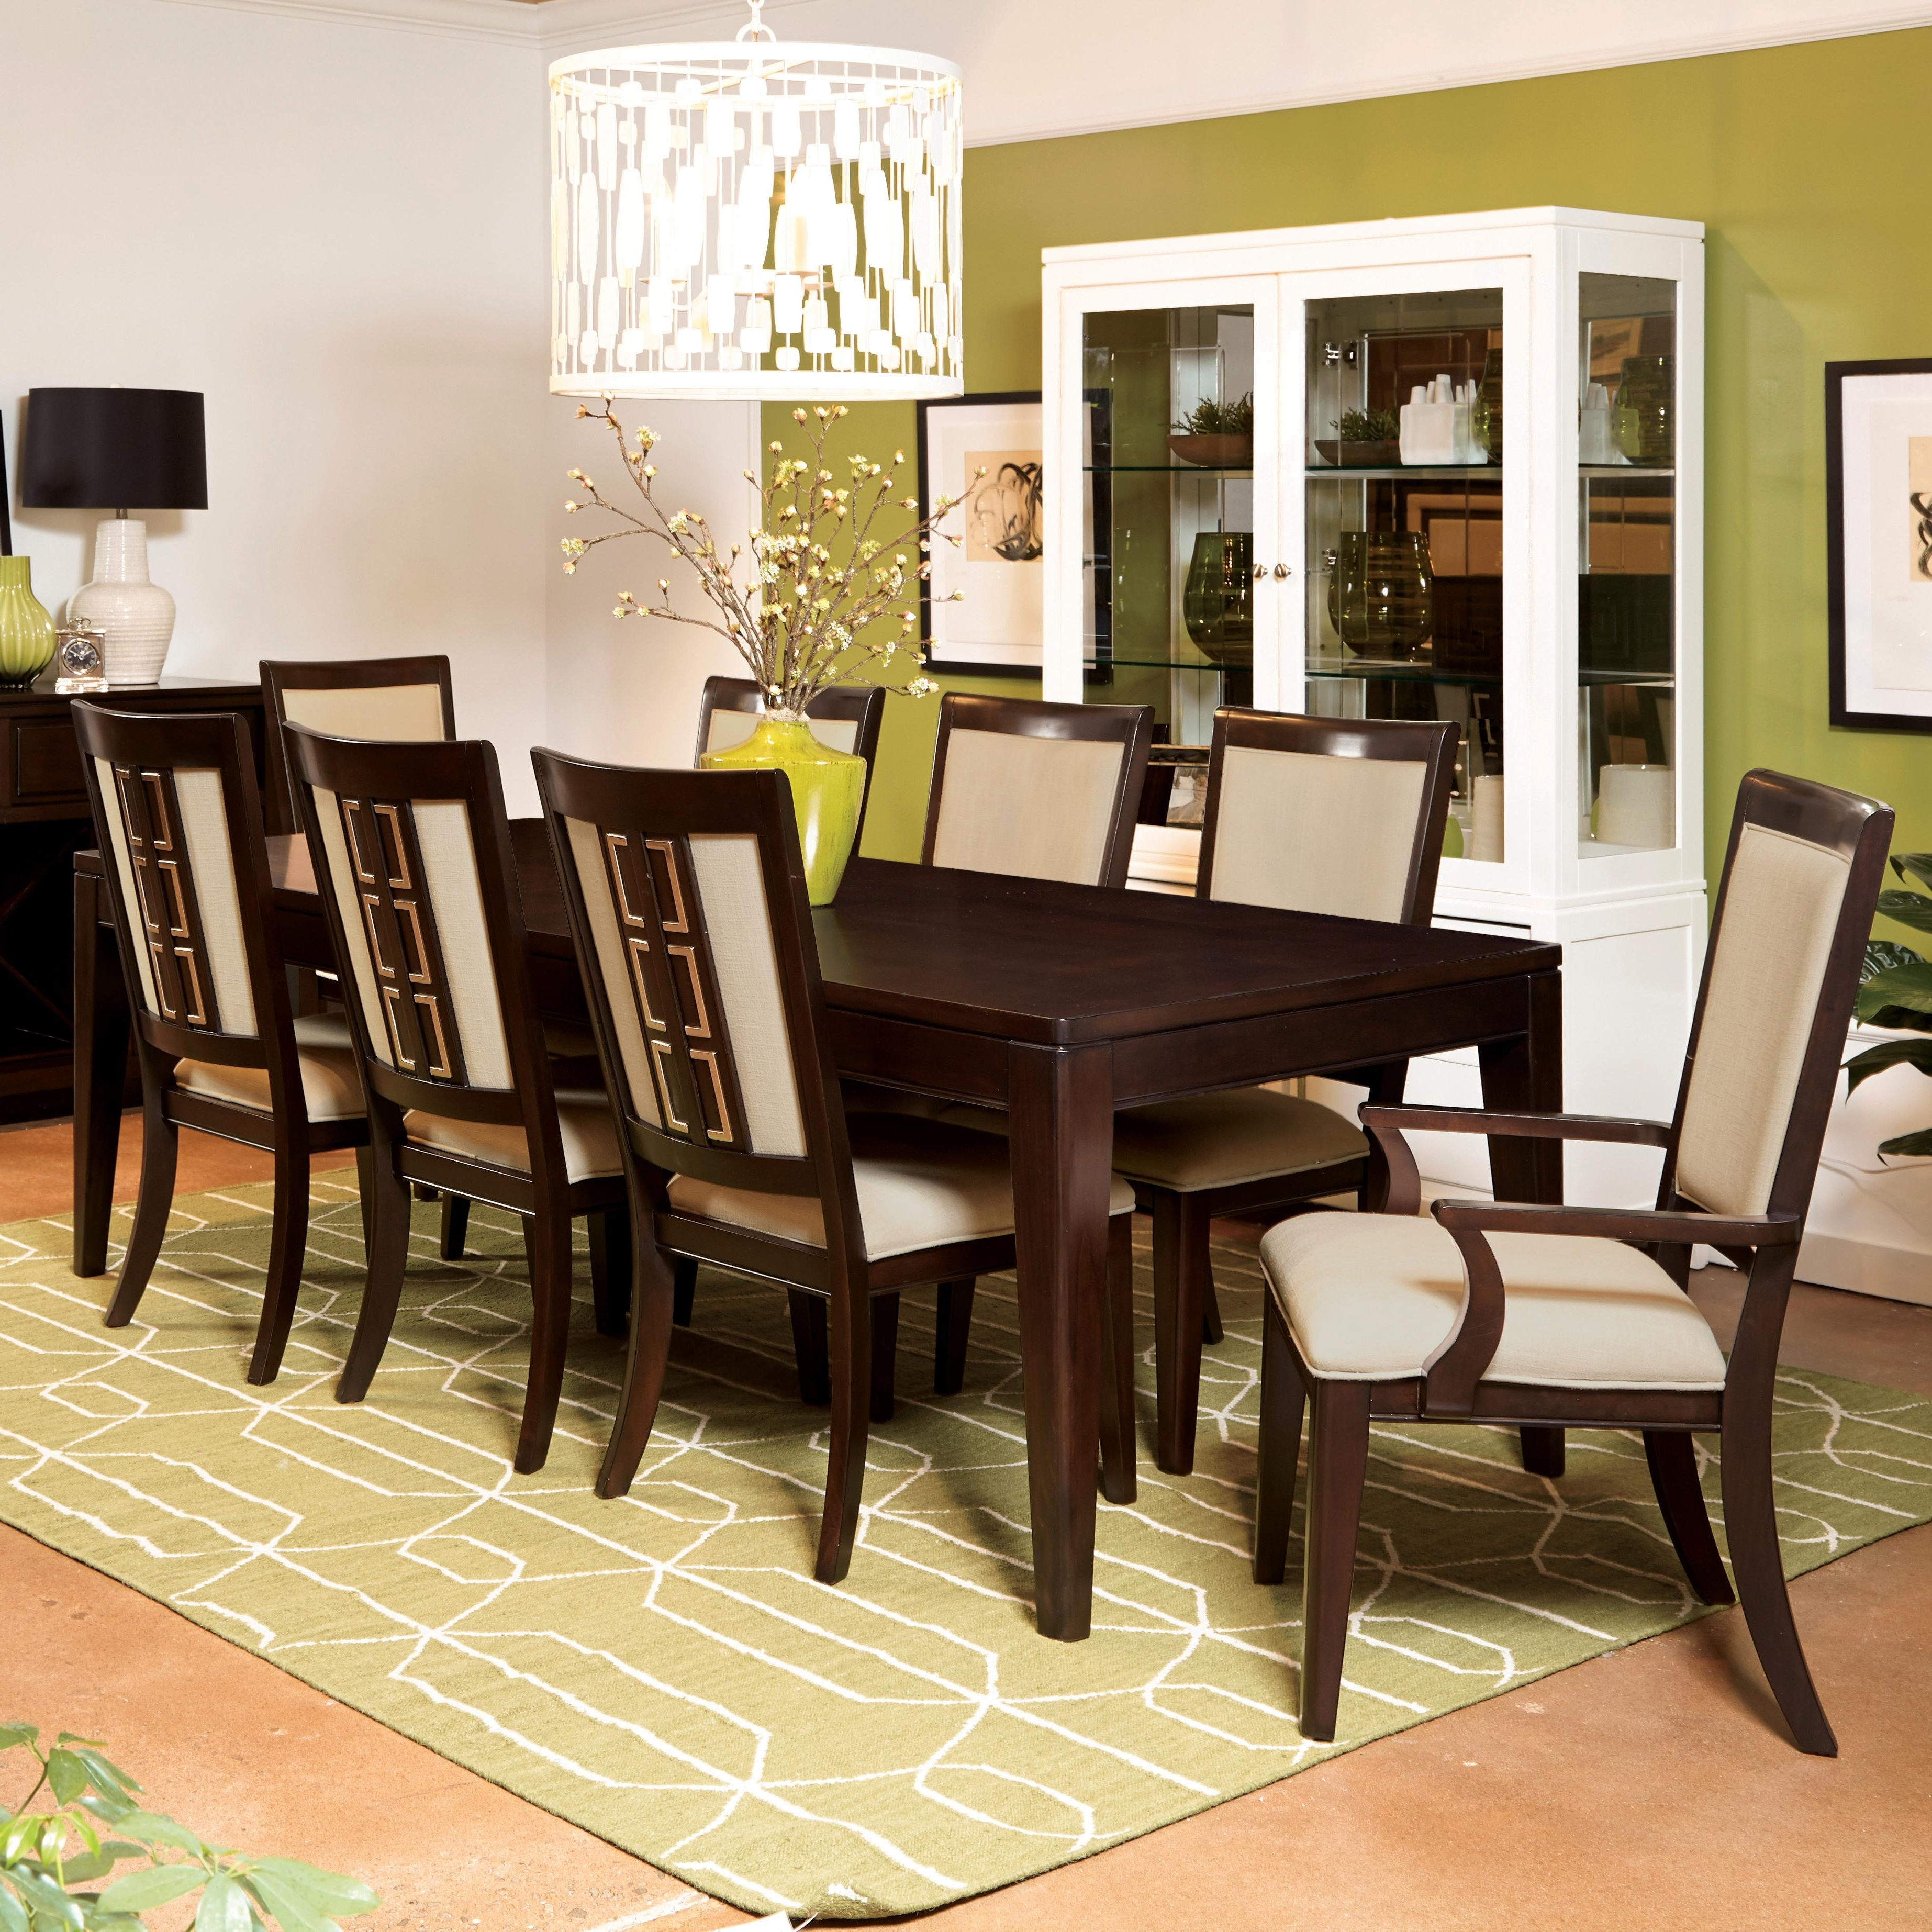 Most Up To Date Contemporary Dining Sets With Regard To Samuel Lawrence Brighton 9 Piece Contemporary Dining Table Set (View 12 of 25)